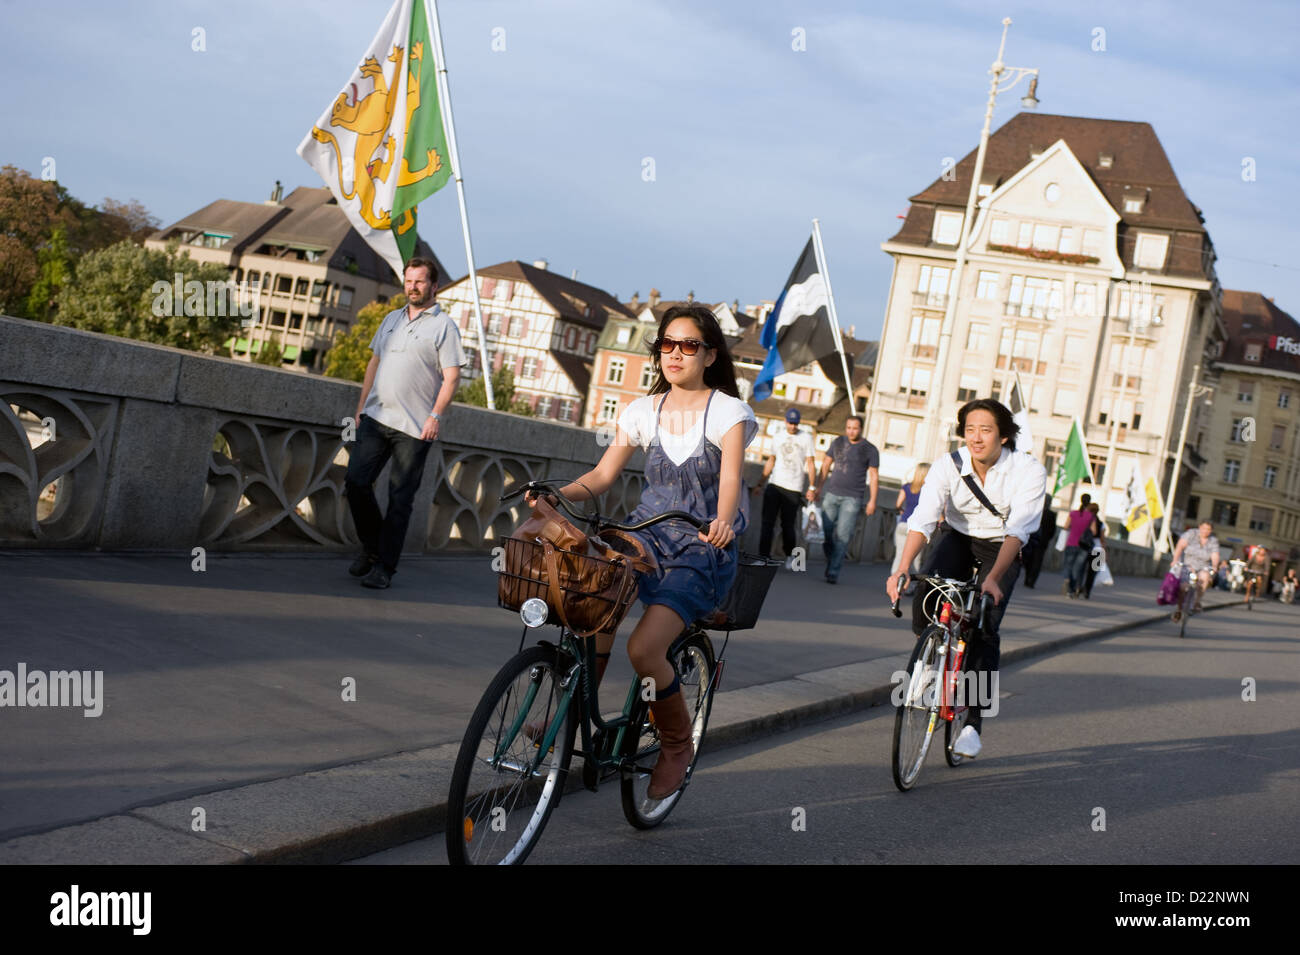 Basel, Switzerland, passersby and flags of the Basel communities on the Middle bridge Stock Photo